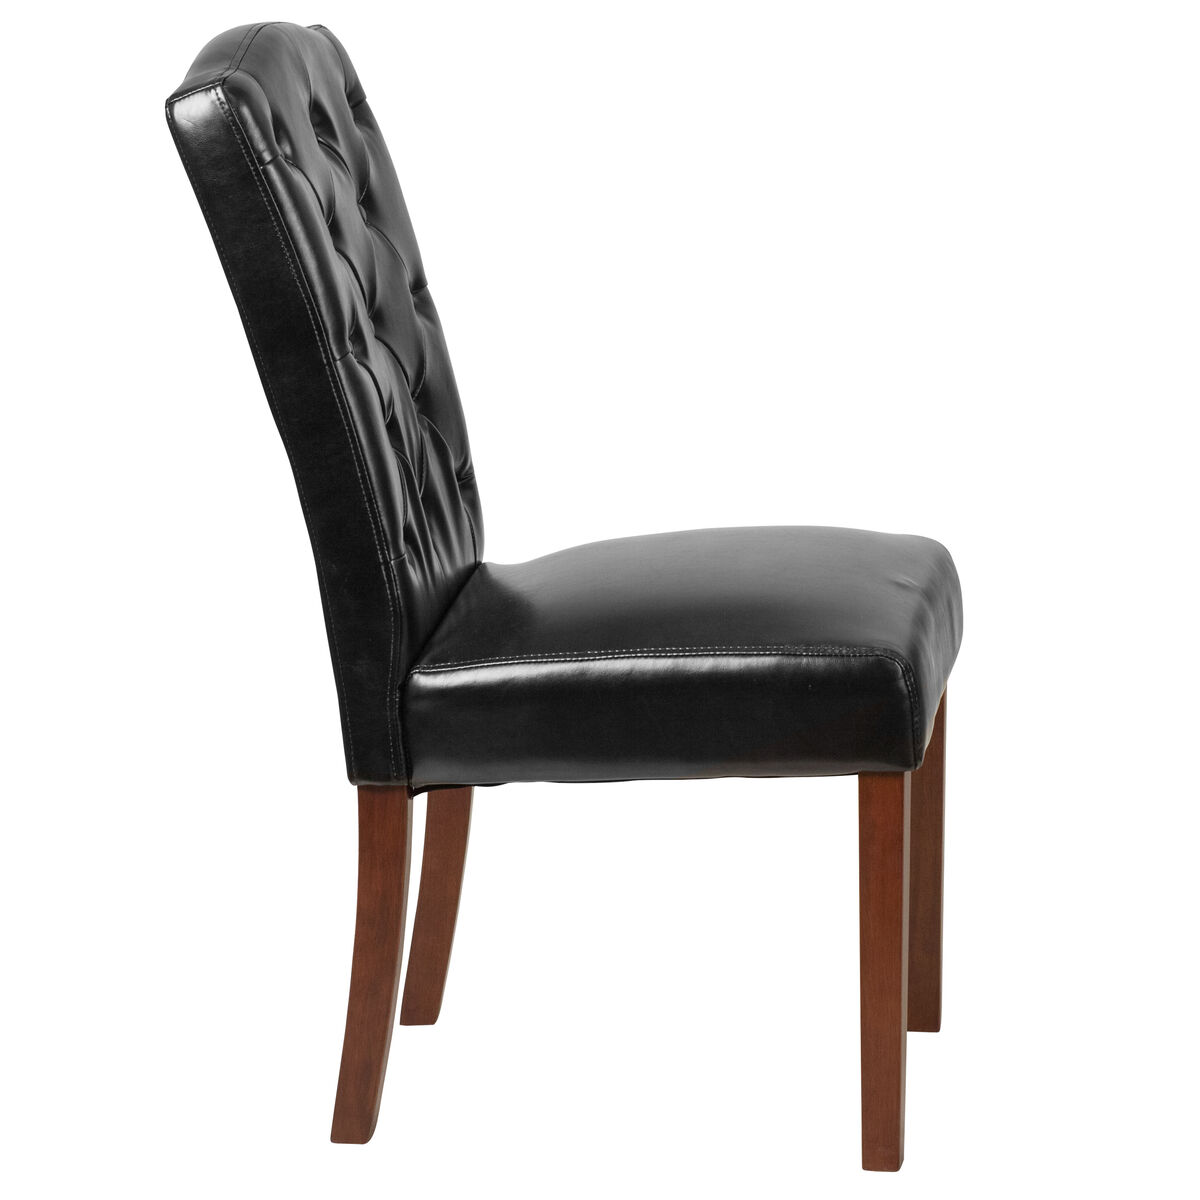 Black Leather Parsons Chair Qy A18 9325 Bk Gg